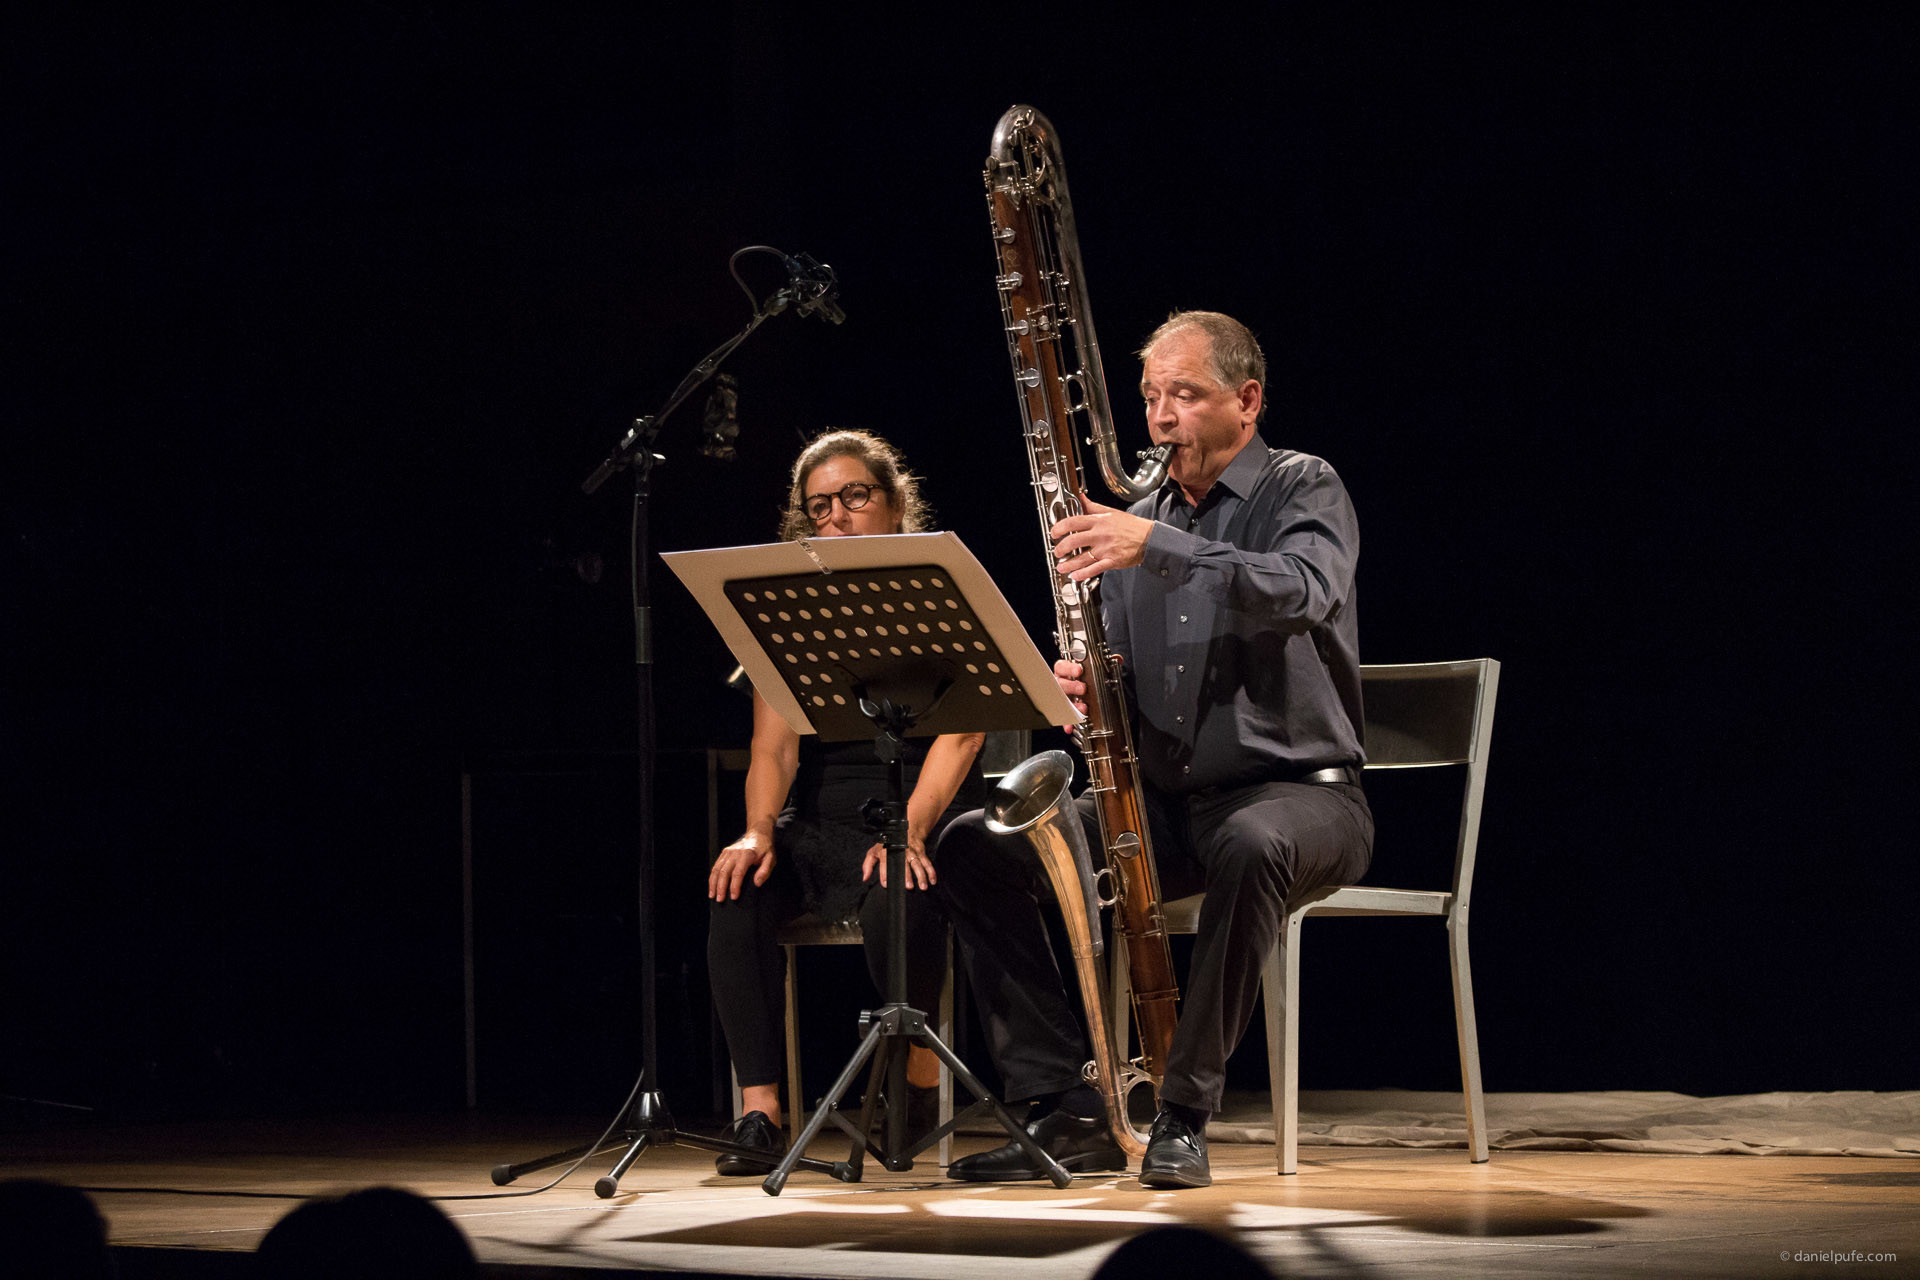 Concert: Aperghis at night - Centralstation Saal